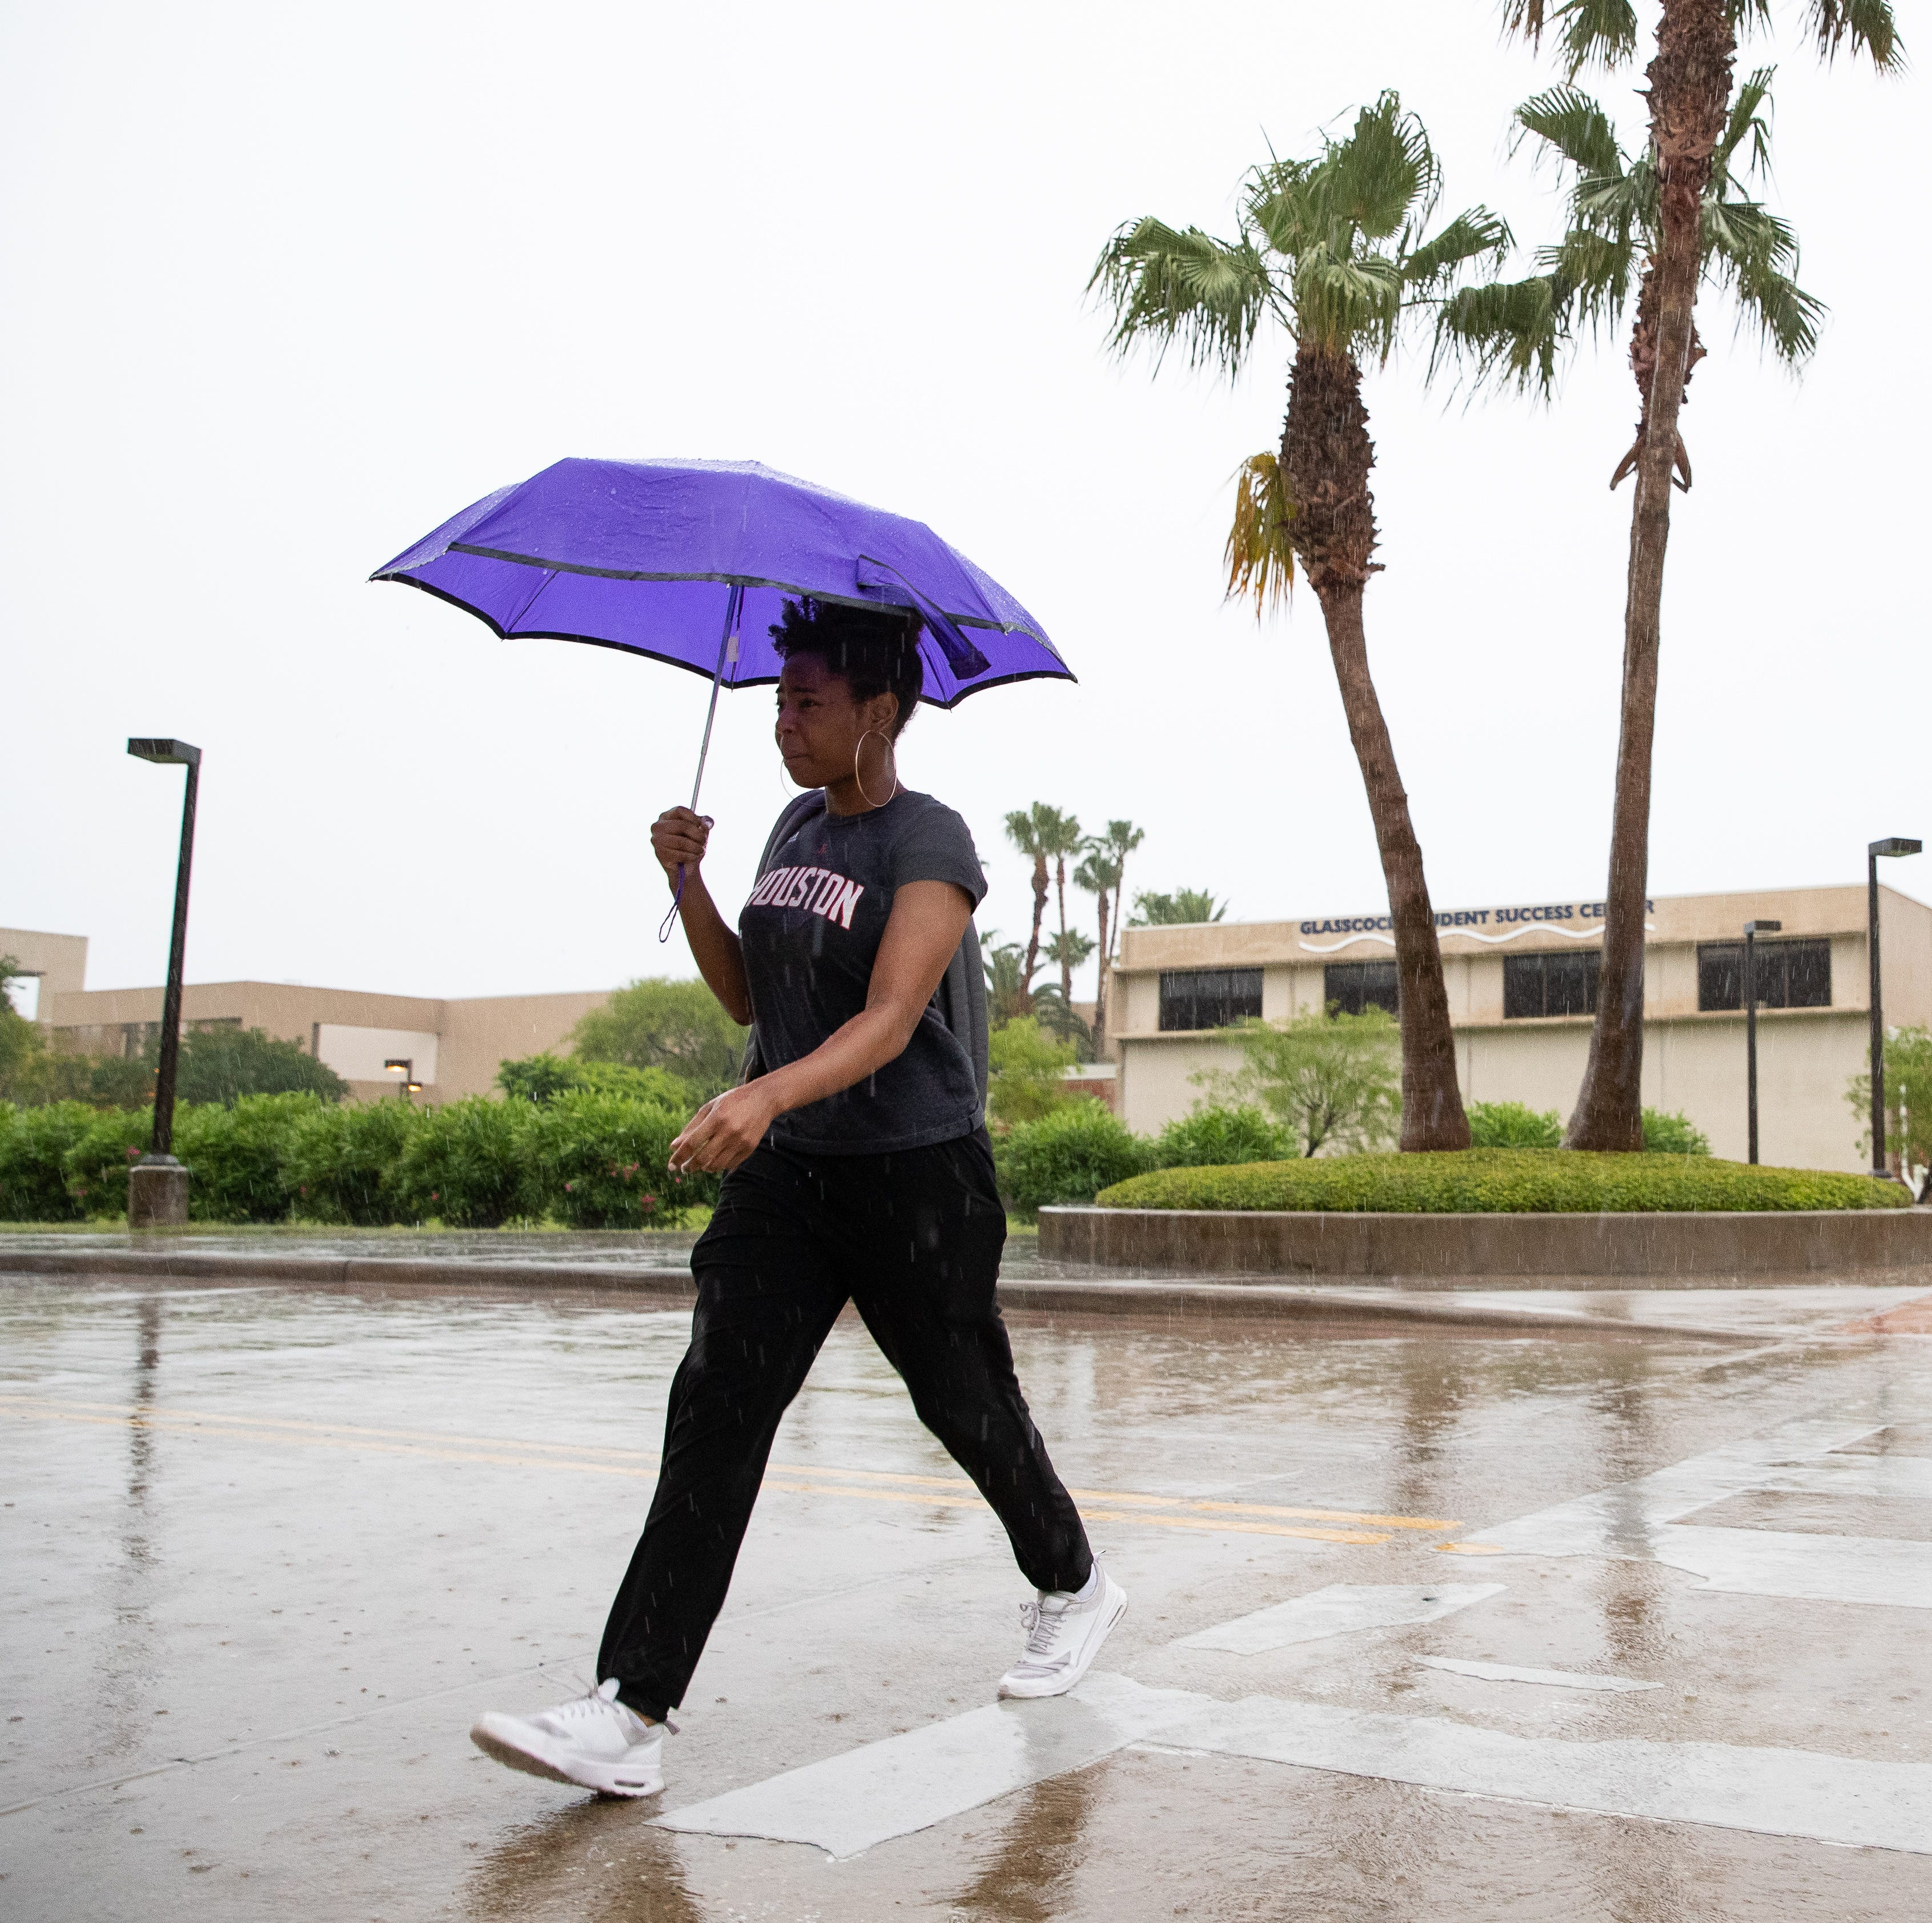 Severe weather warnings call for tornadoes, hail throughout South Texas